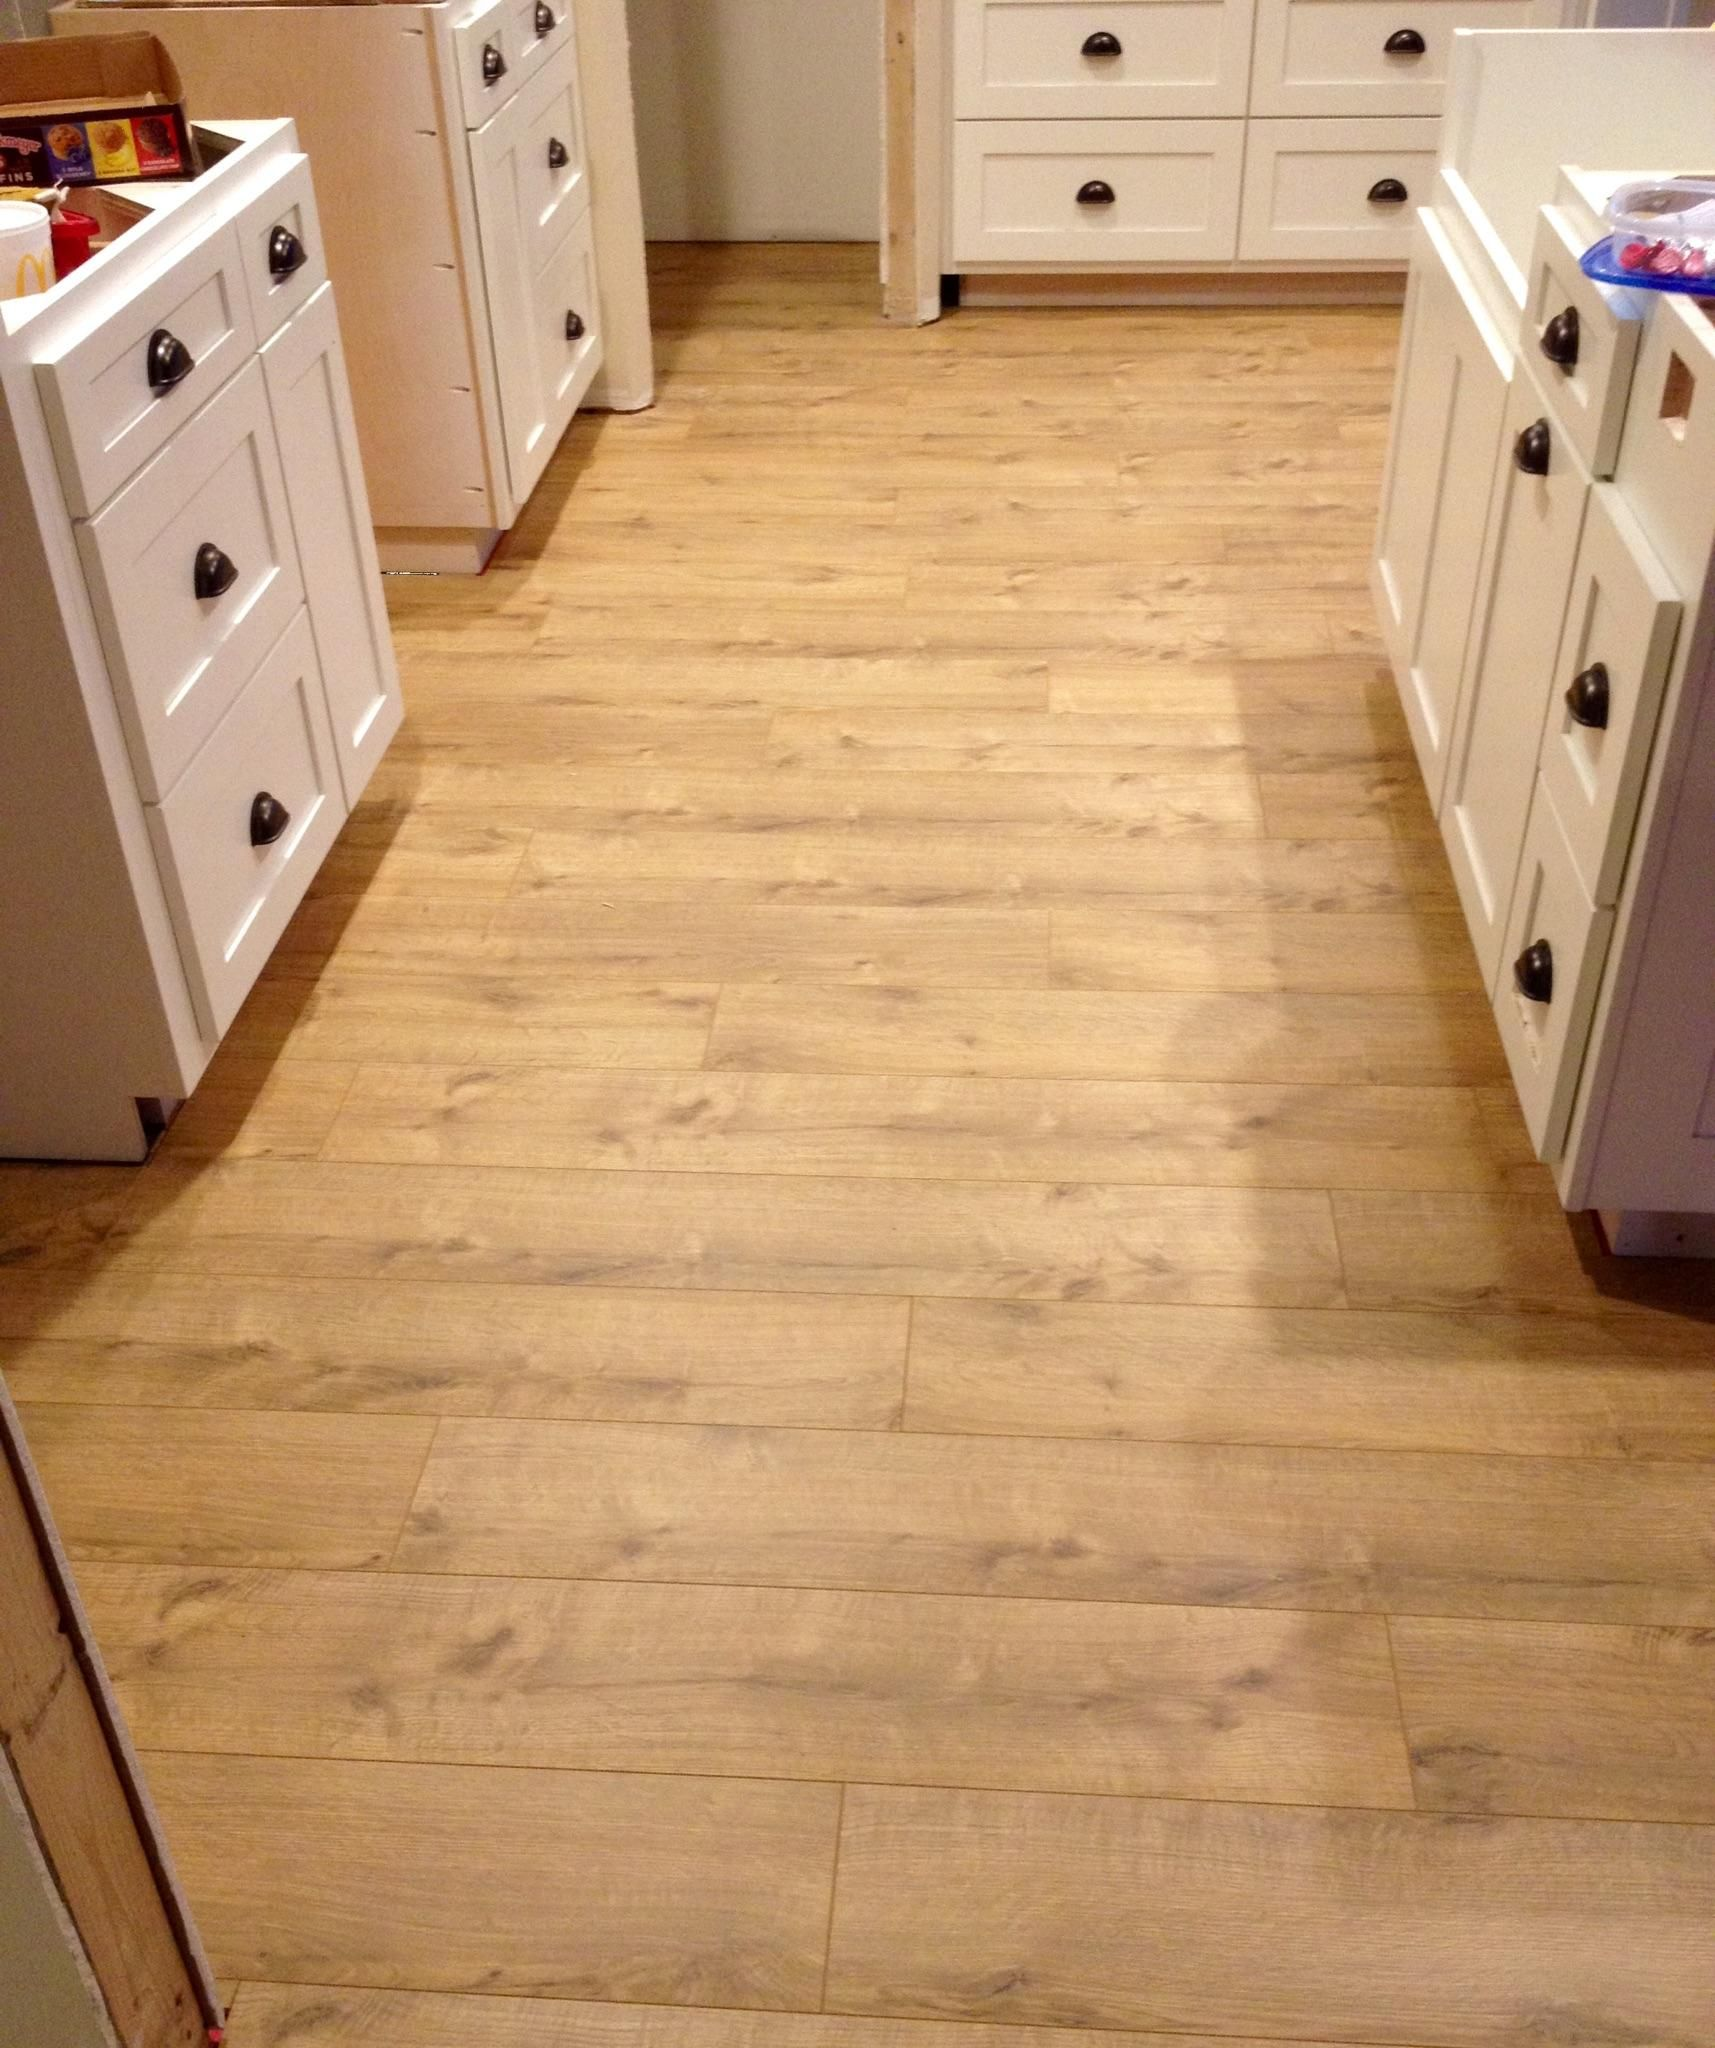 White Kitchen Oak Floor: A Realistic Wood Look Gives This White Kitchen A Rustic